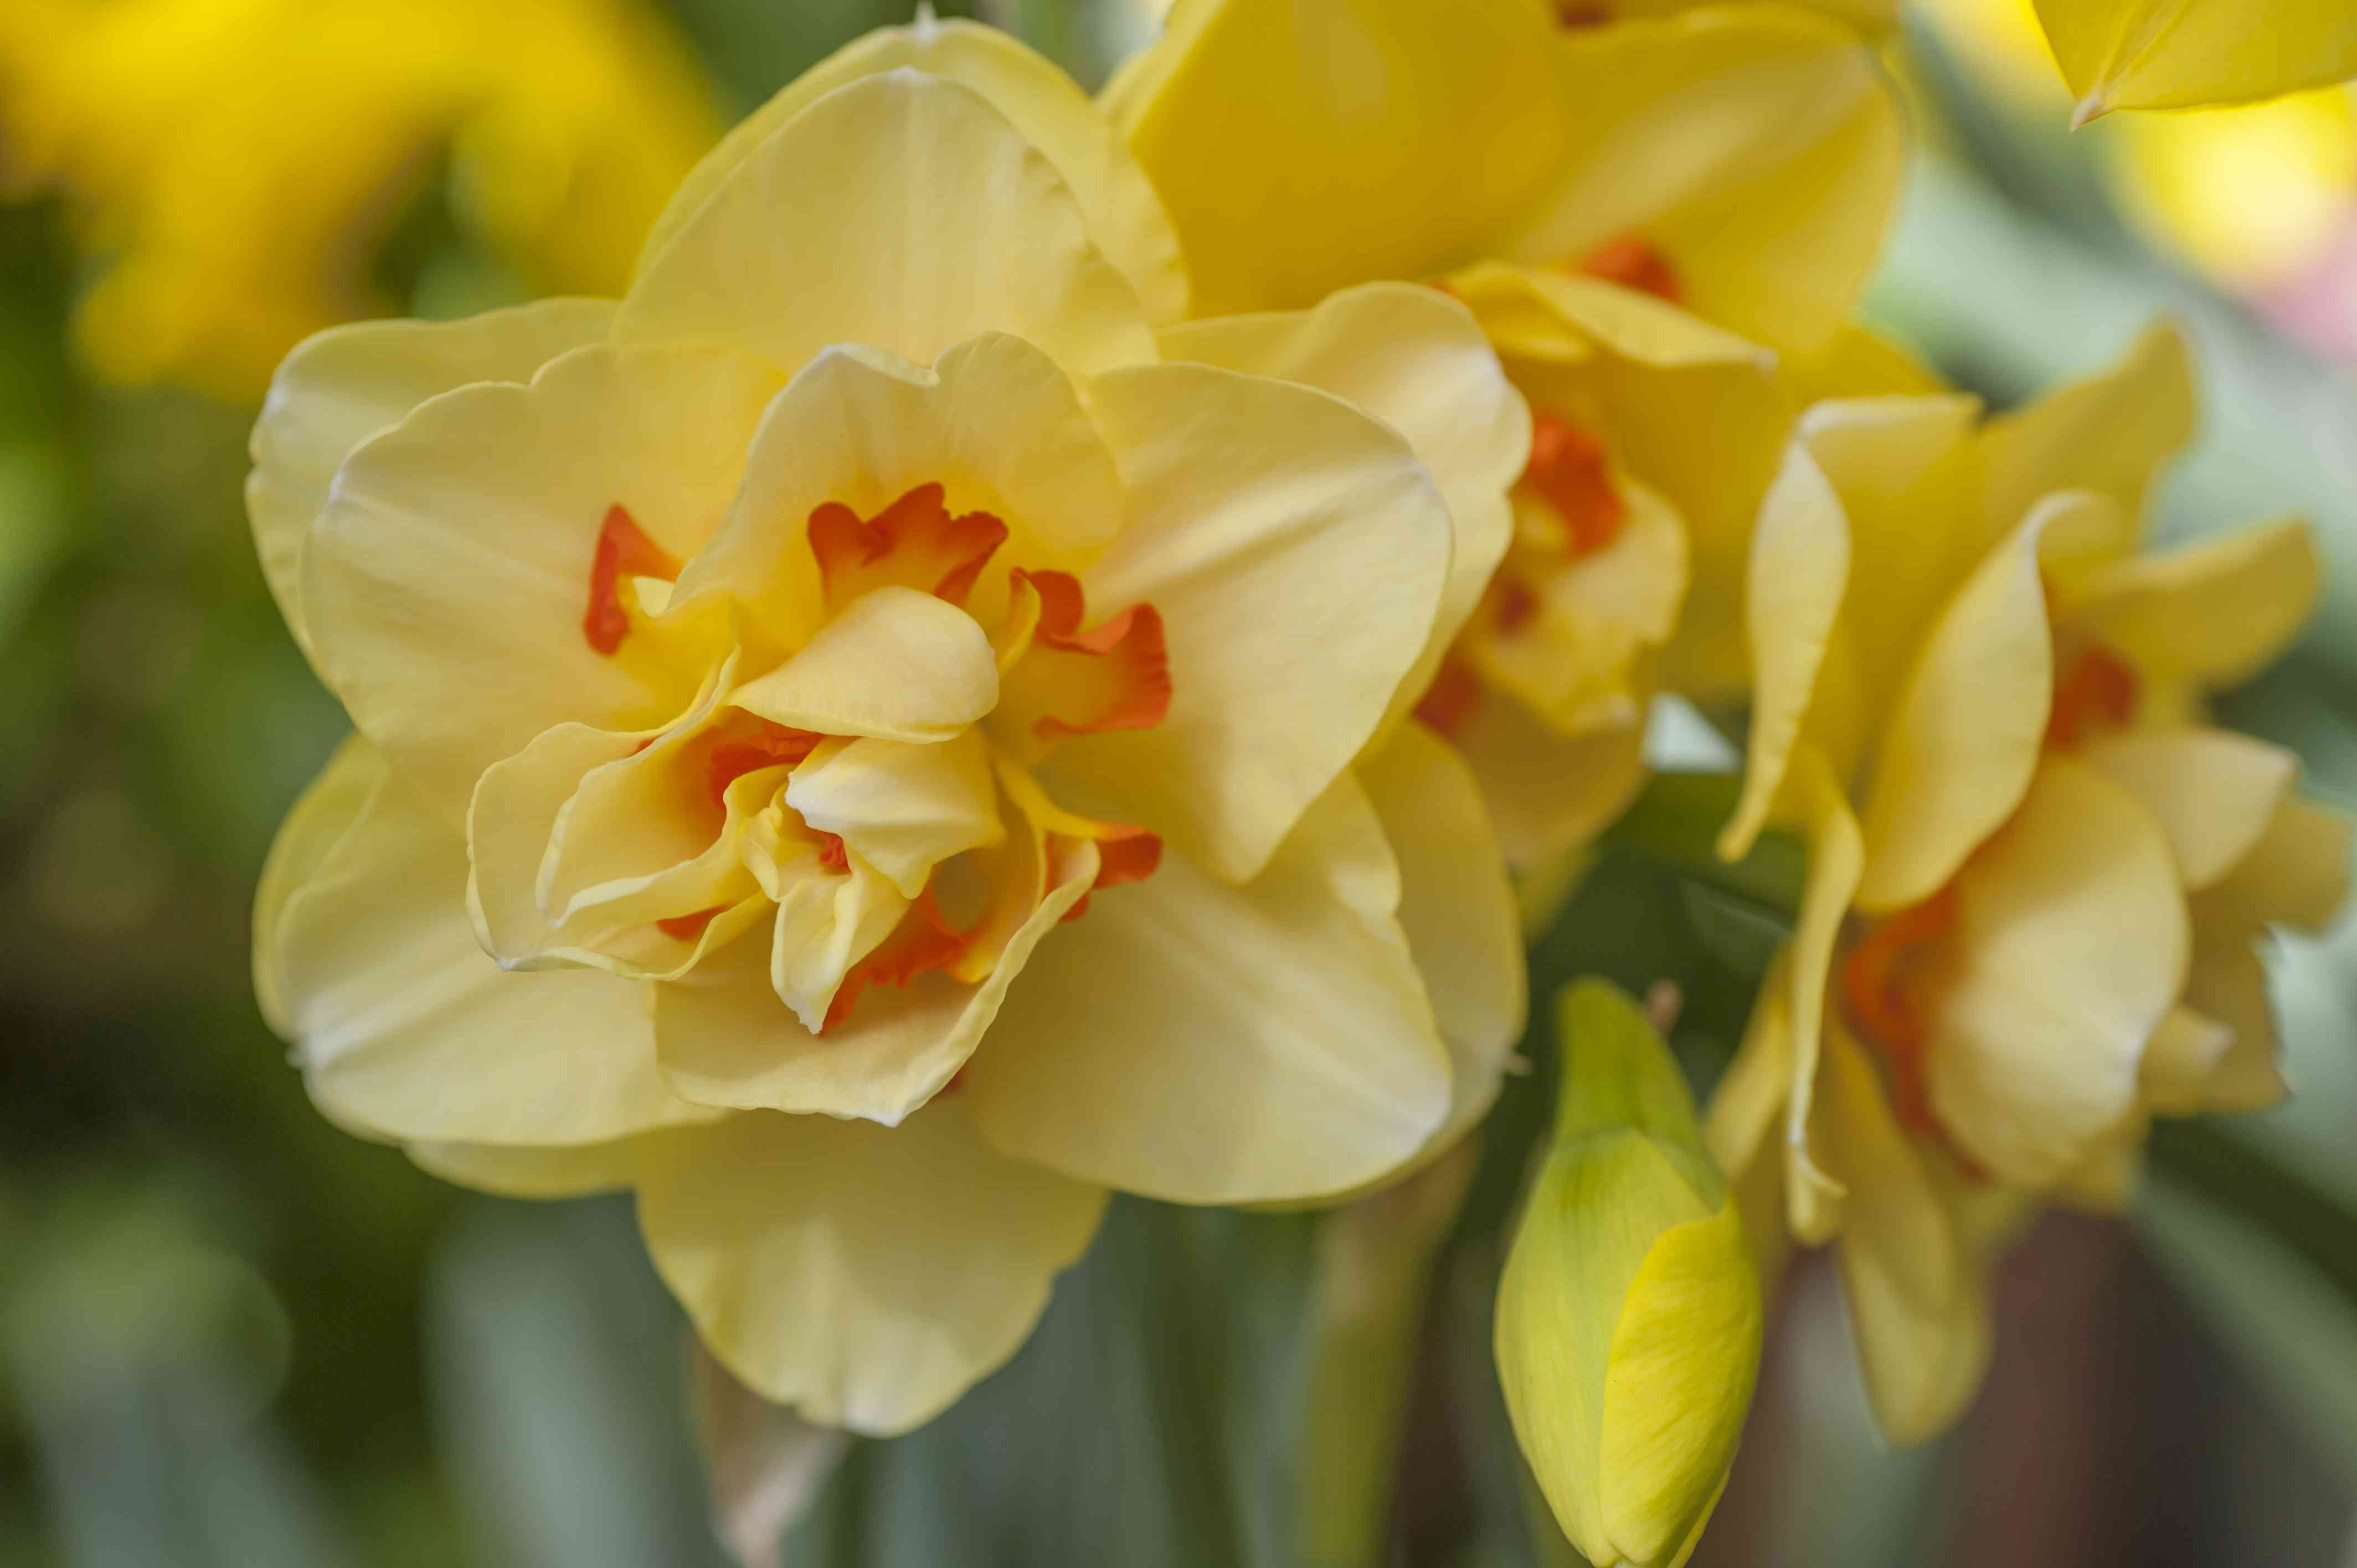 Double daffodil with yellow and red petals